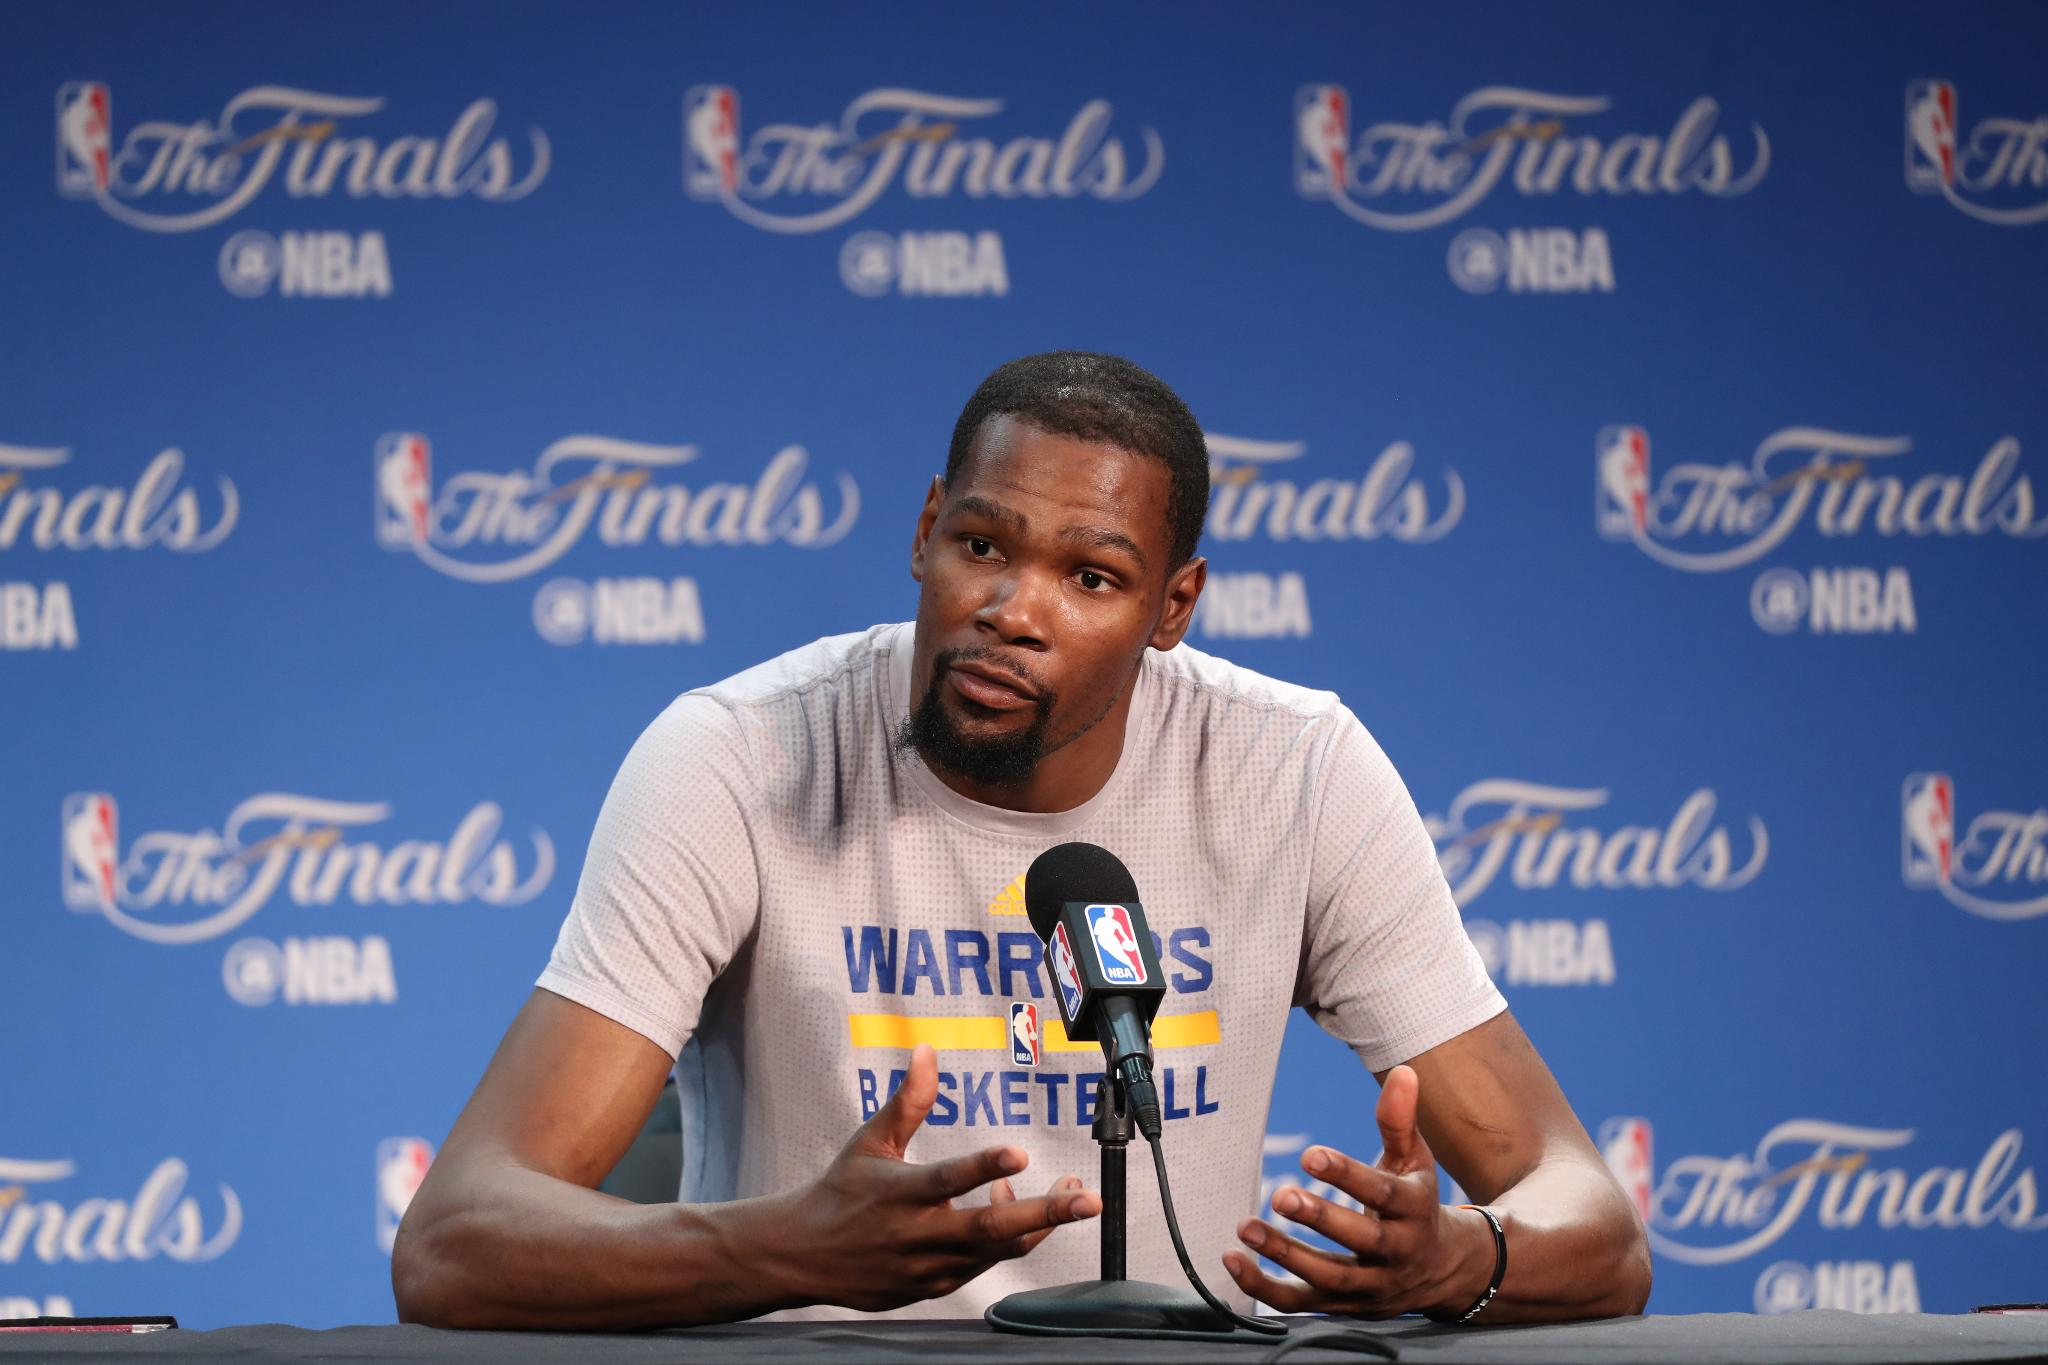 Kevin Durant took pay cut to help teammates get paid...  MORE: https://t.co/SVWaiOfXrX https://t.co/NdNCJ2pf5k